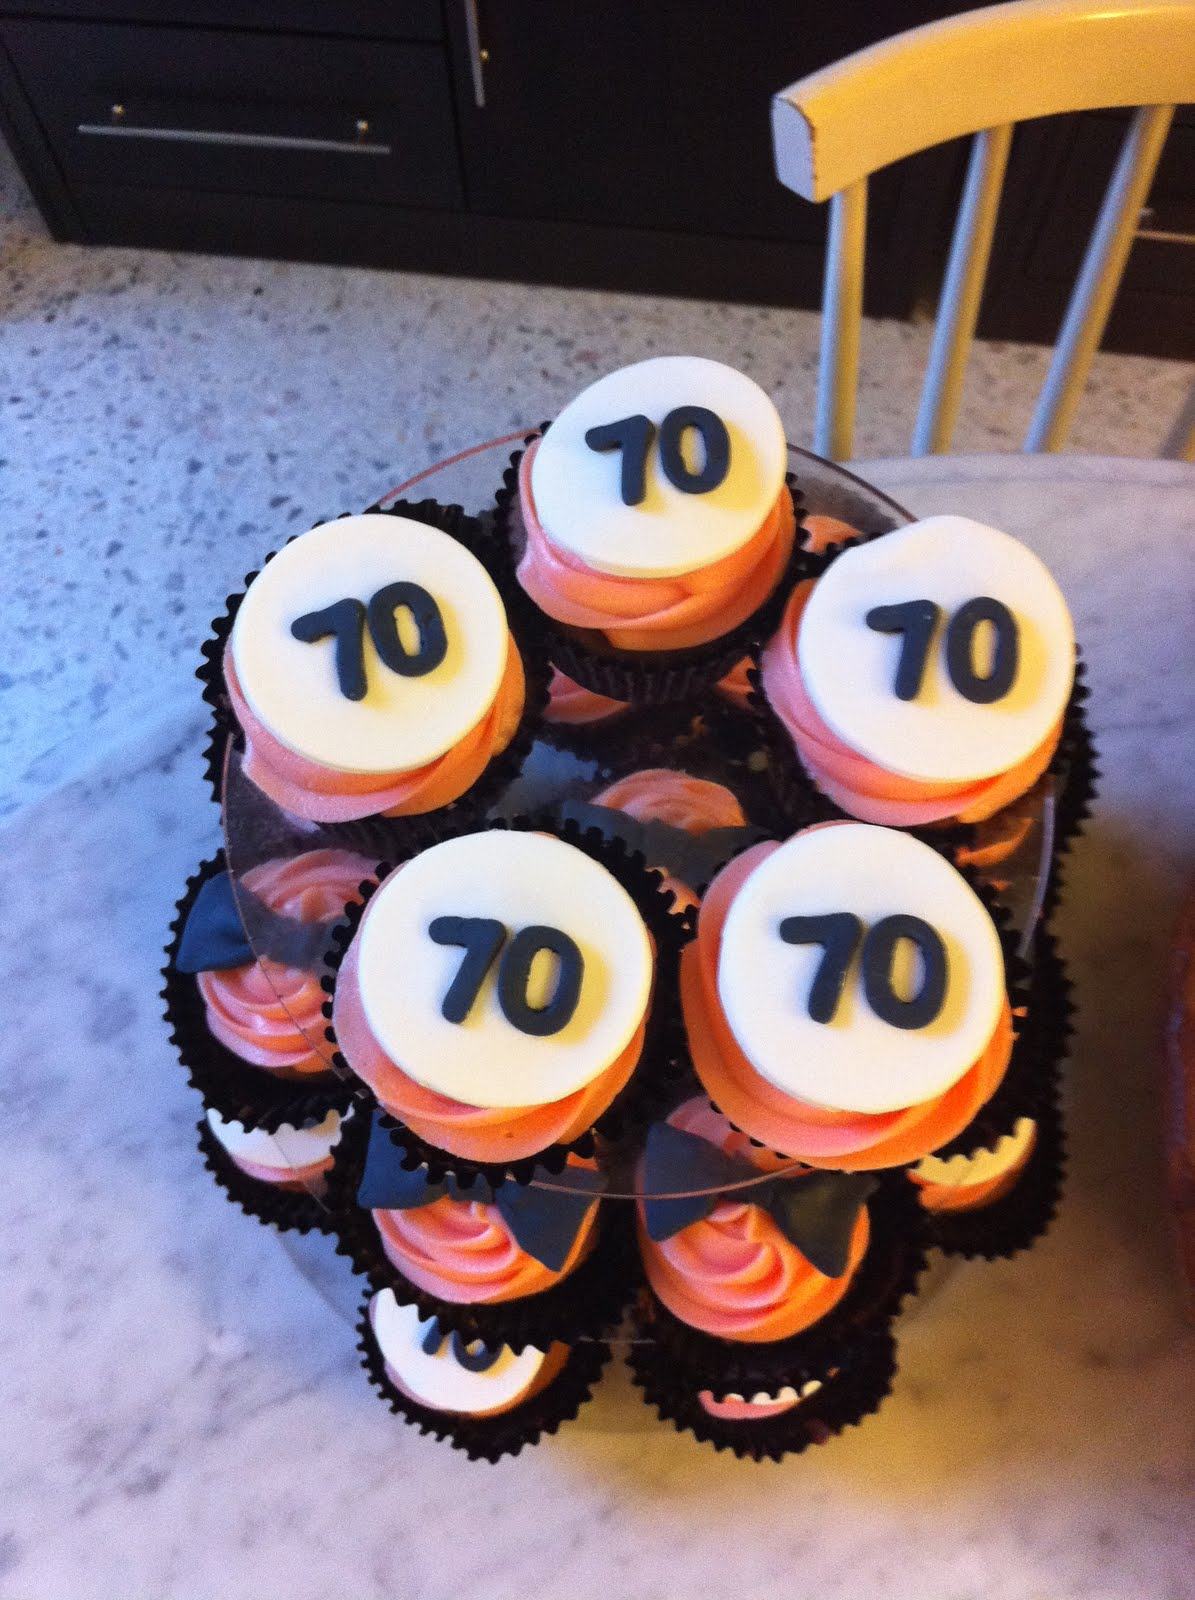 Cake In A Cup Daddy S 70th Birthday Cupcakes